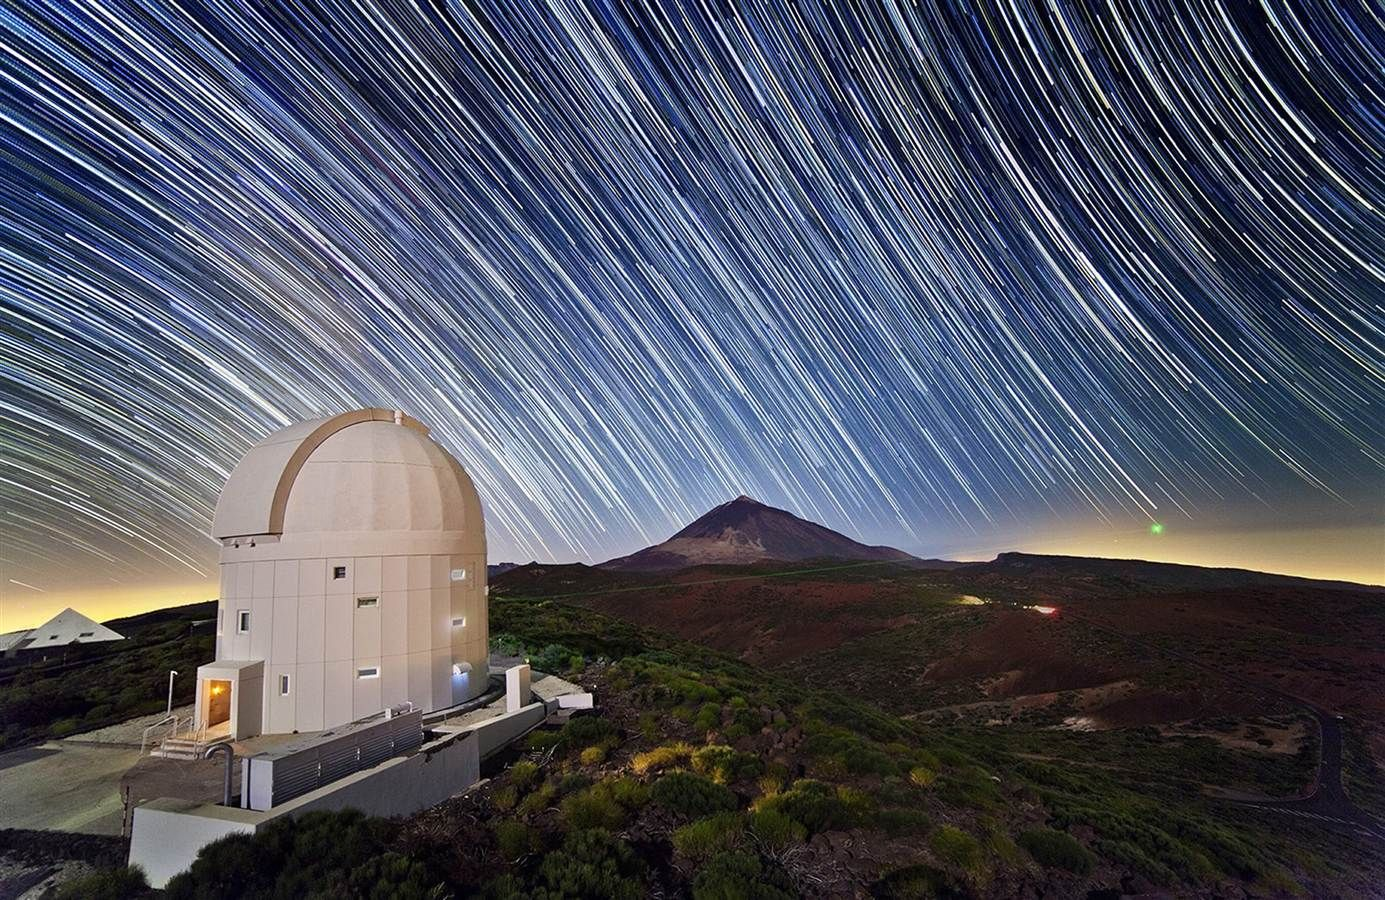 WorldAndScience: Stars streak above the European Space Agency's Optical Ground Station https://t.co/Y8CCN6mFYc